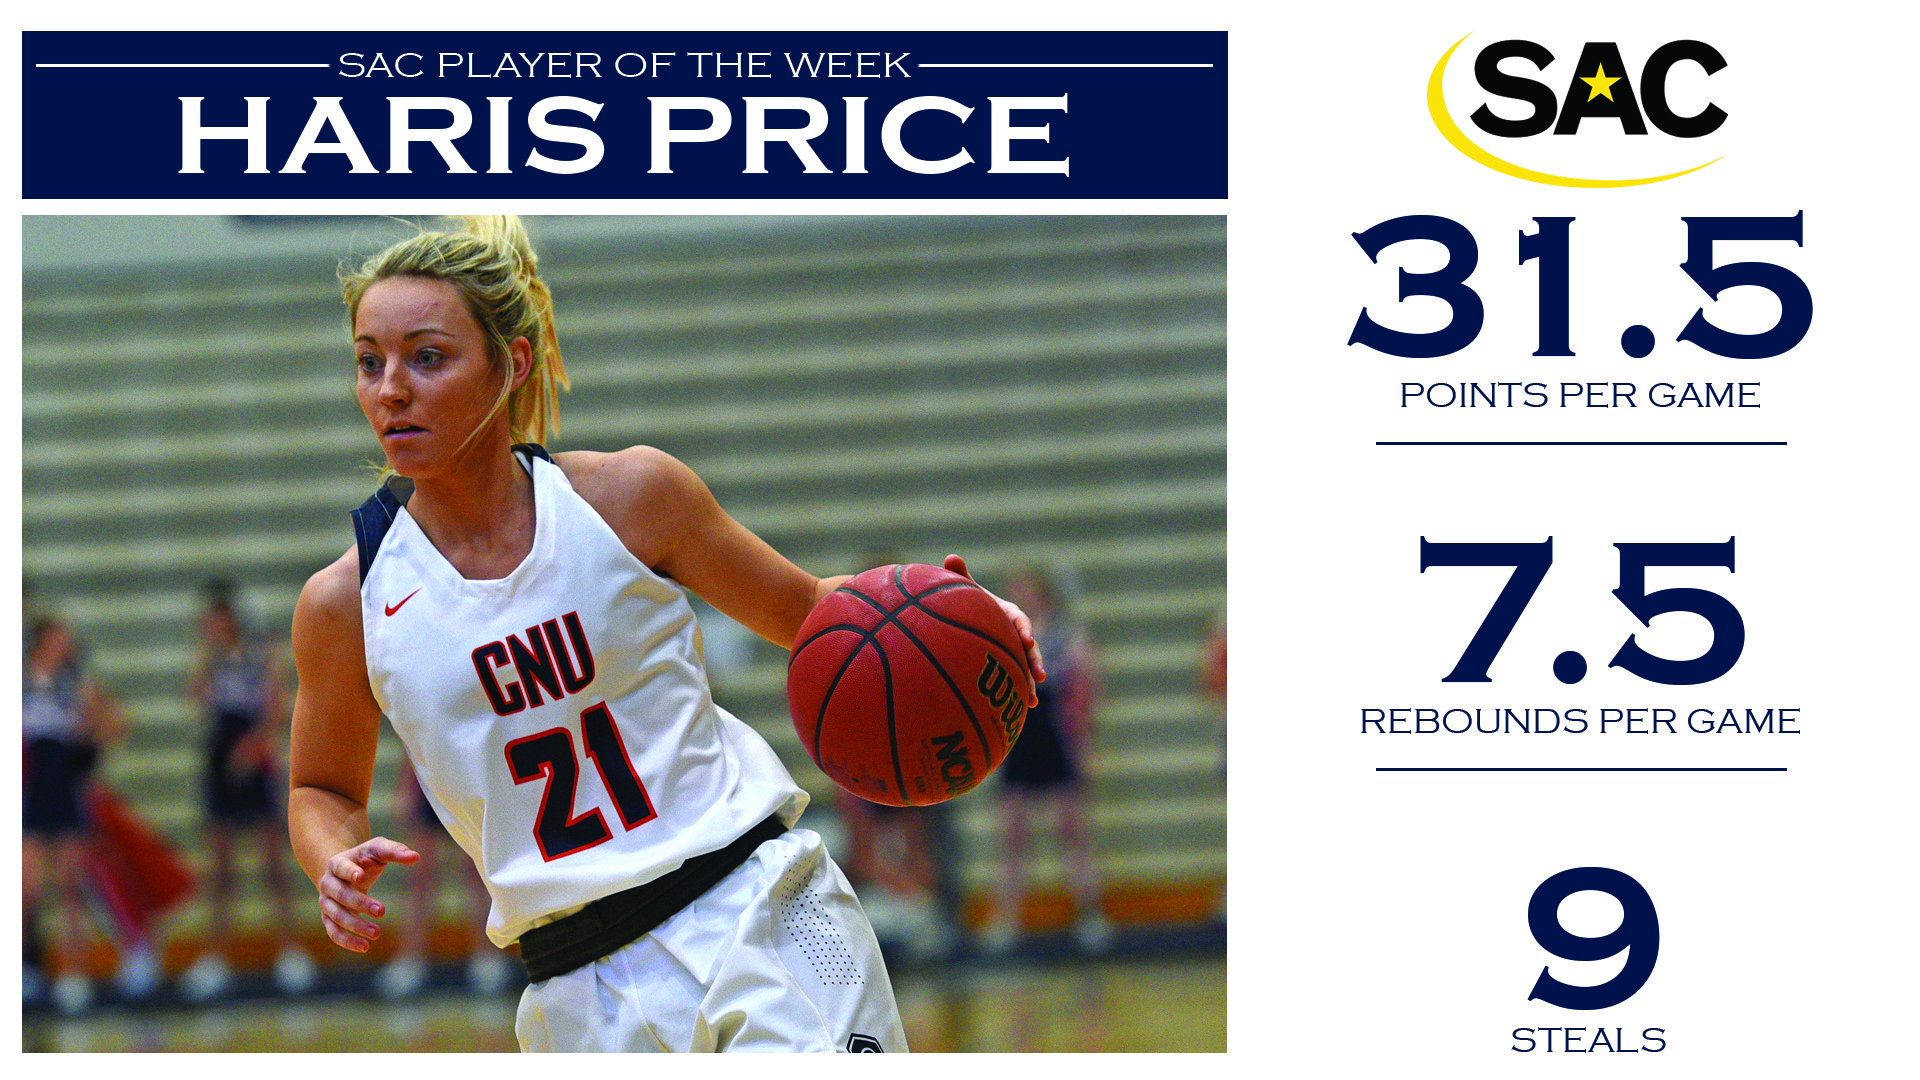 SAC lauds Price with Player of the Week honors